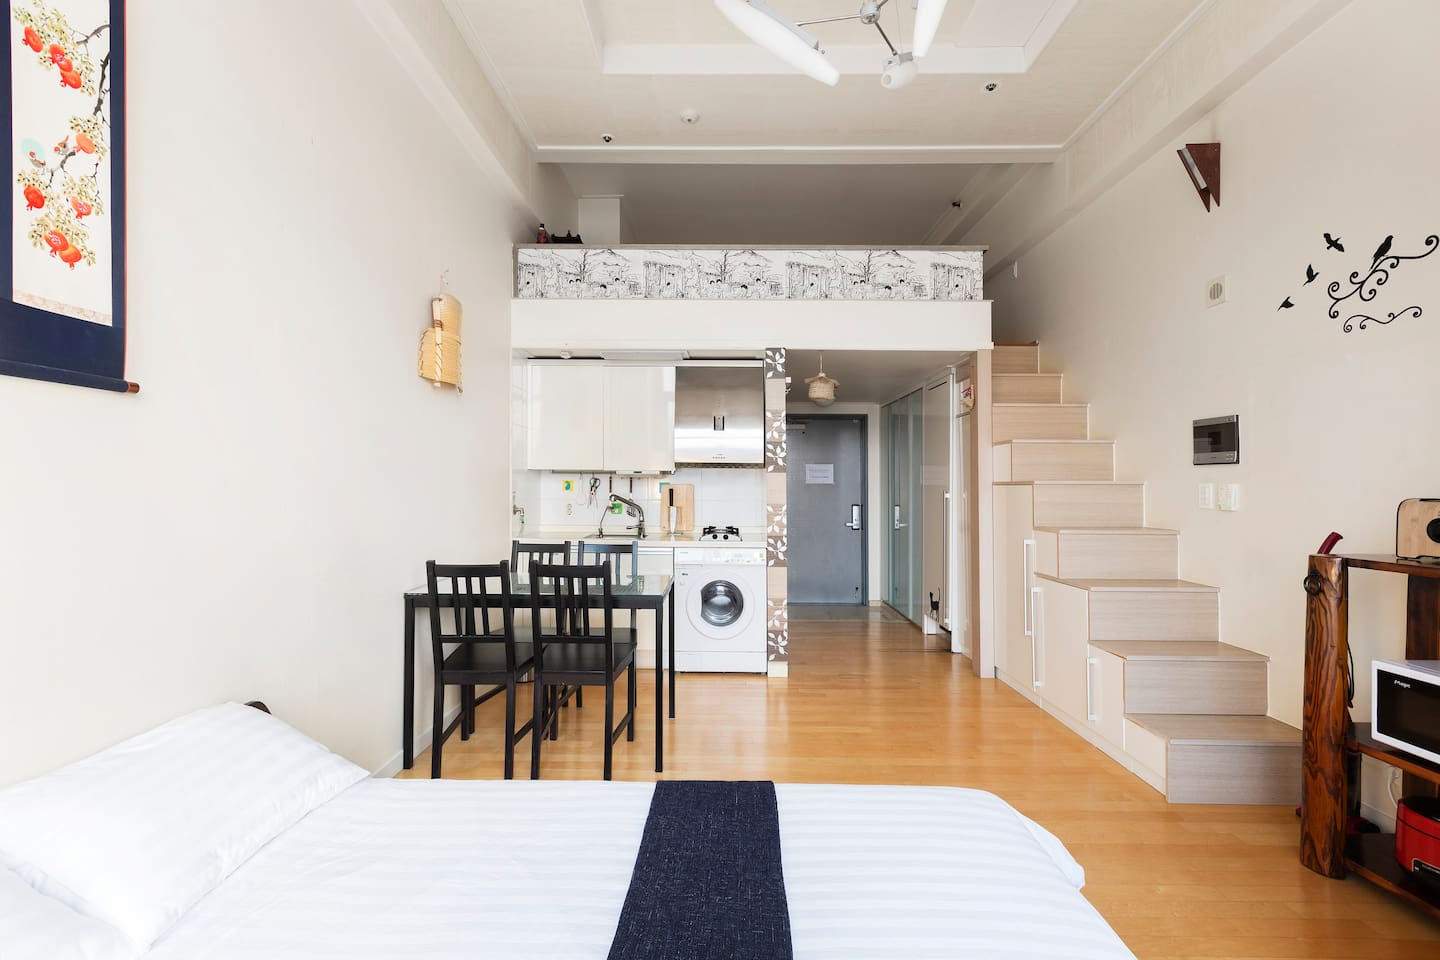 202 House Seoulstation Duplex Apt 202 House Seoul Station 1 Apartments For Rent In